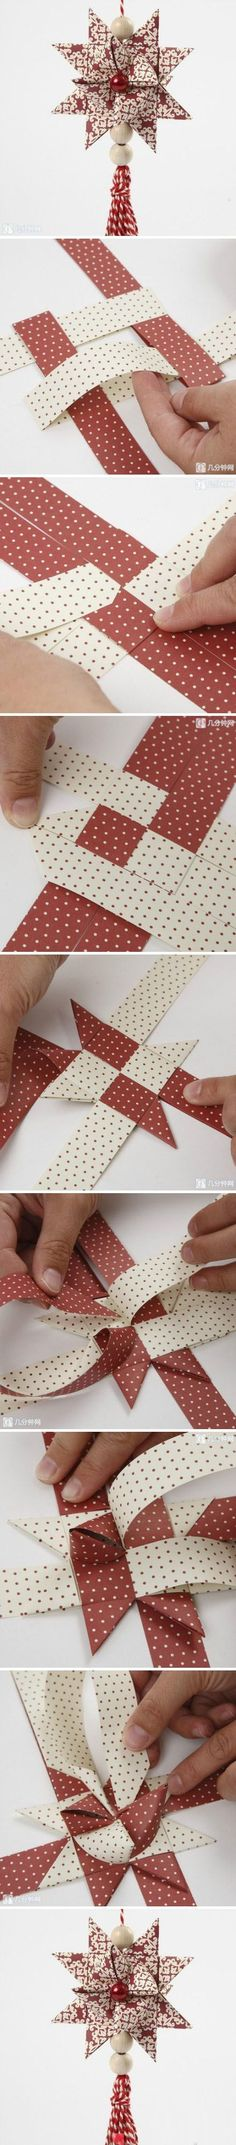 such a fun folded star